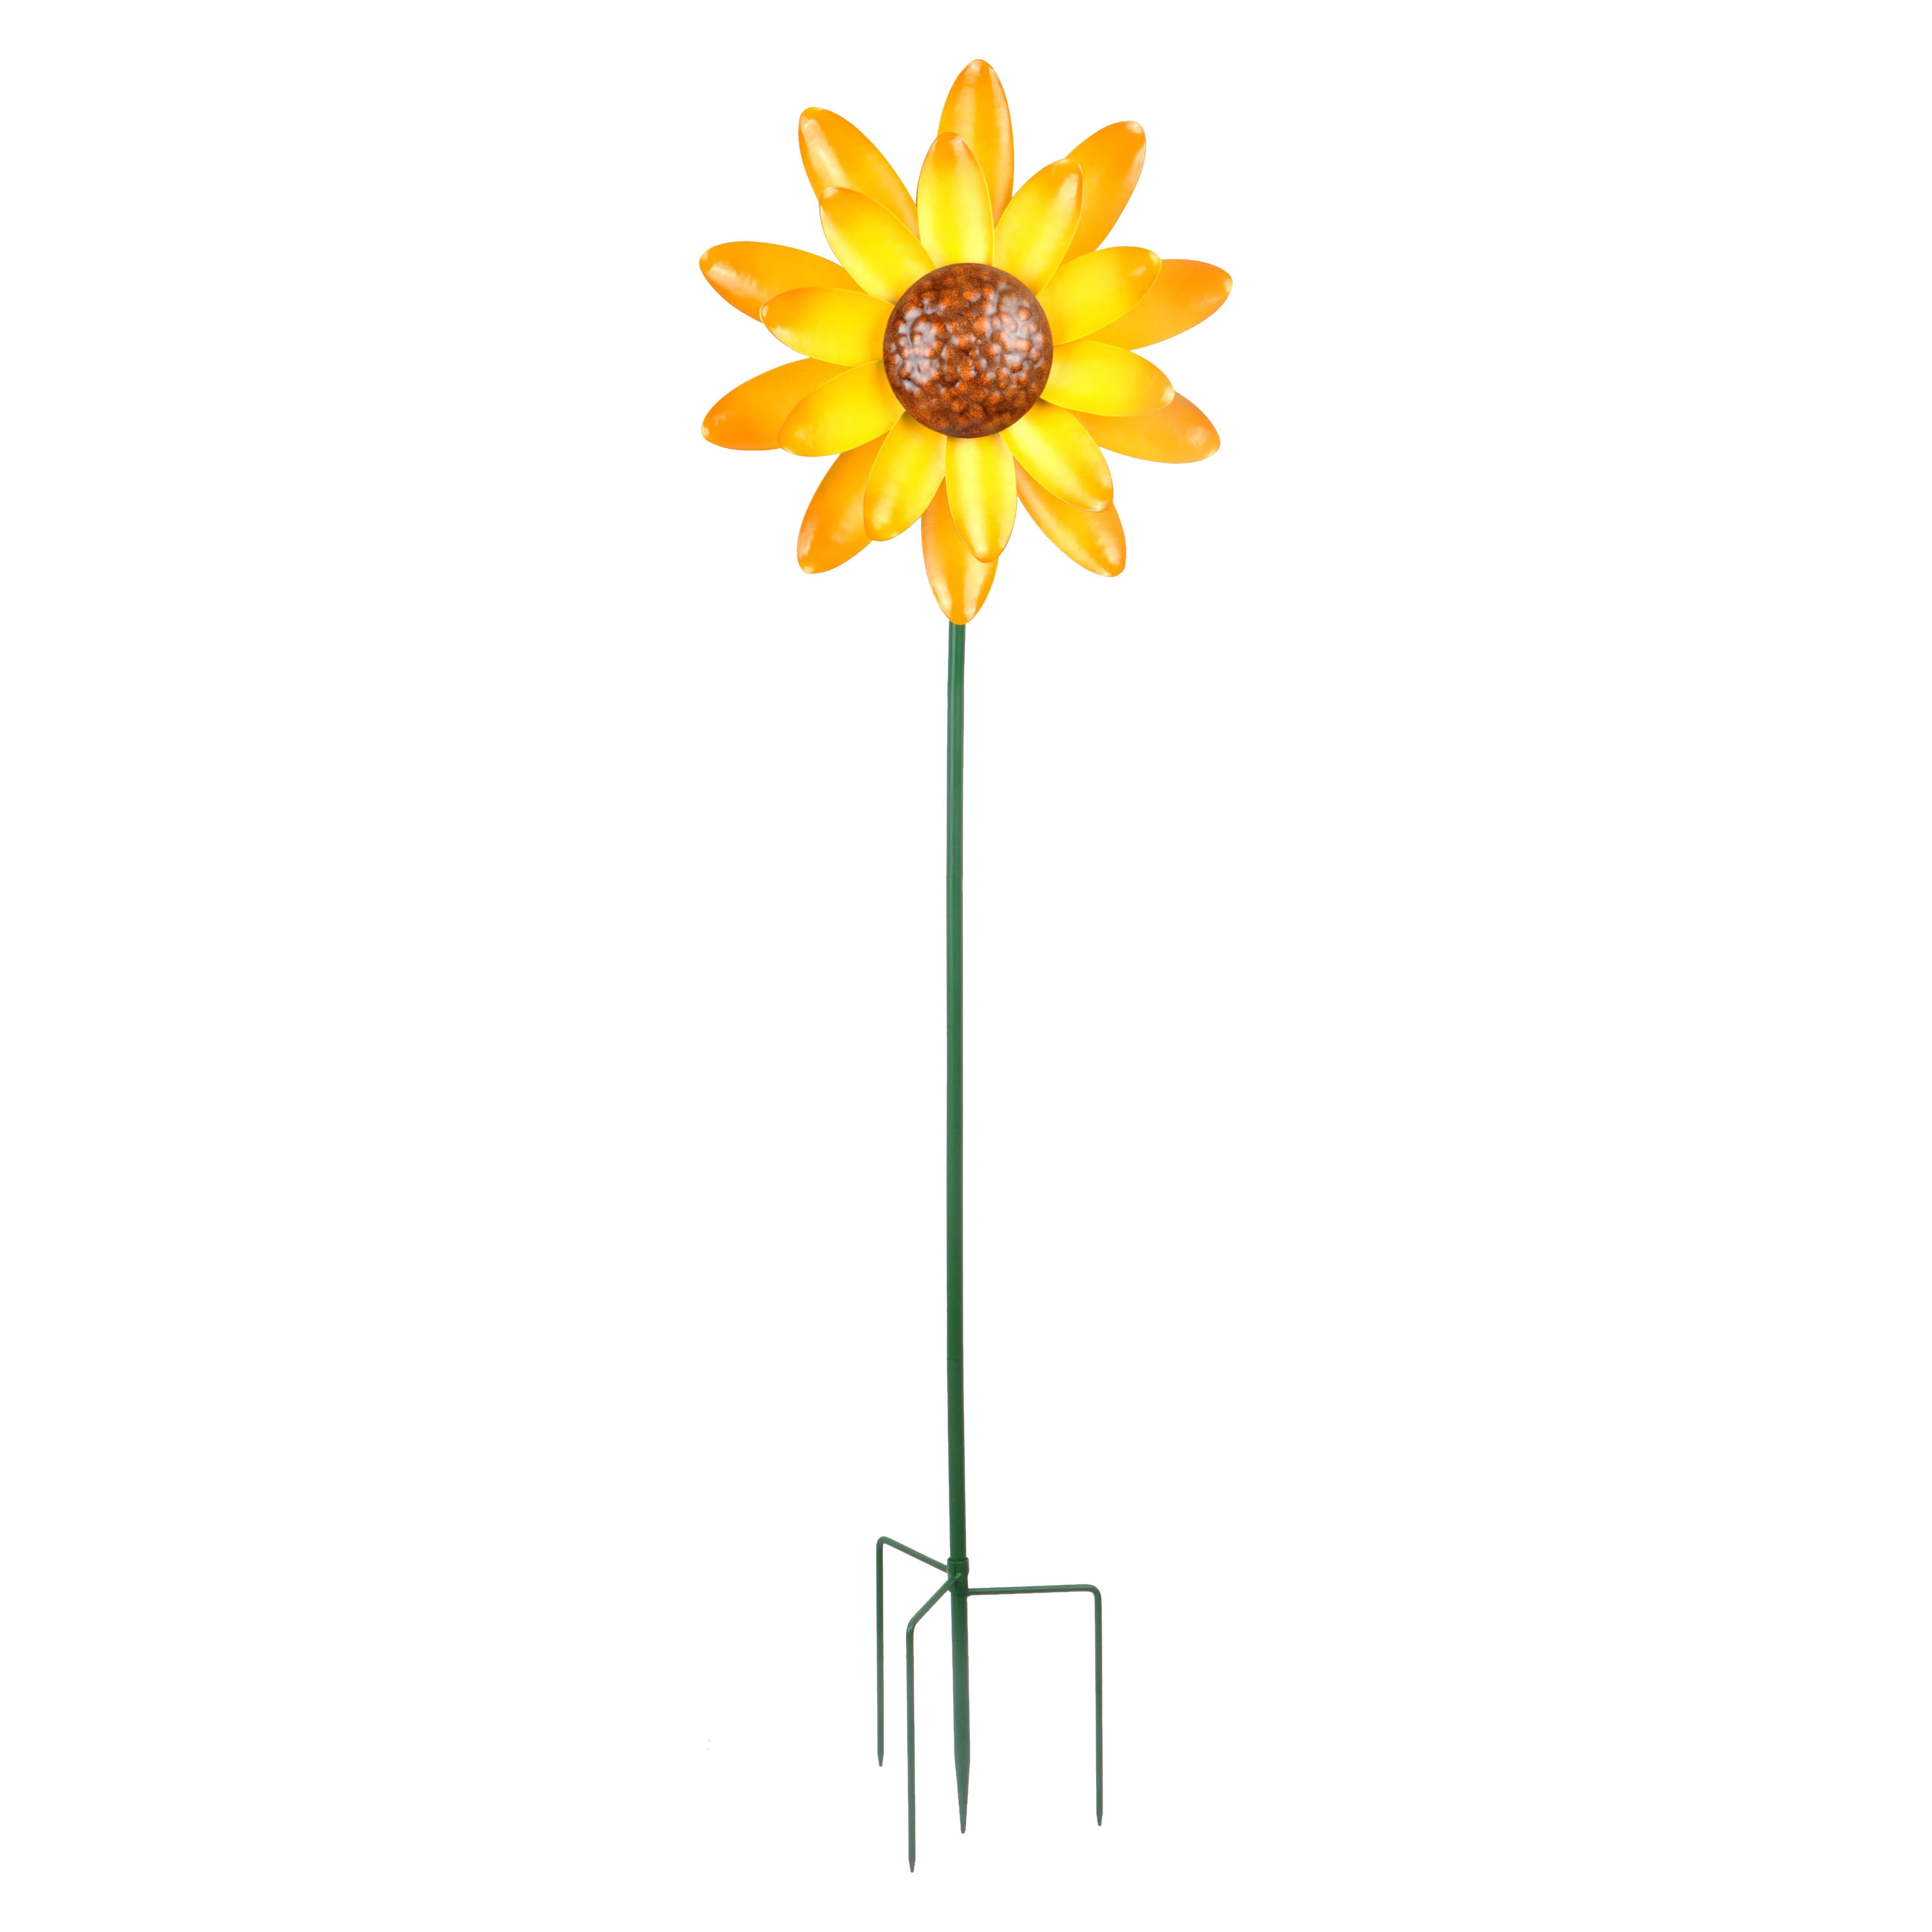 Mainstays Sunflower Wind Spinner by Quanzhou Viition Gifts Co., LTD